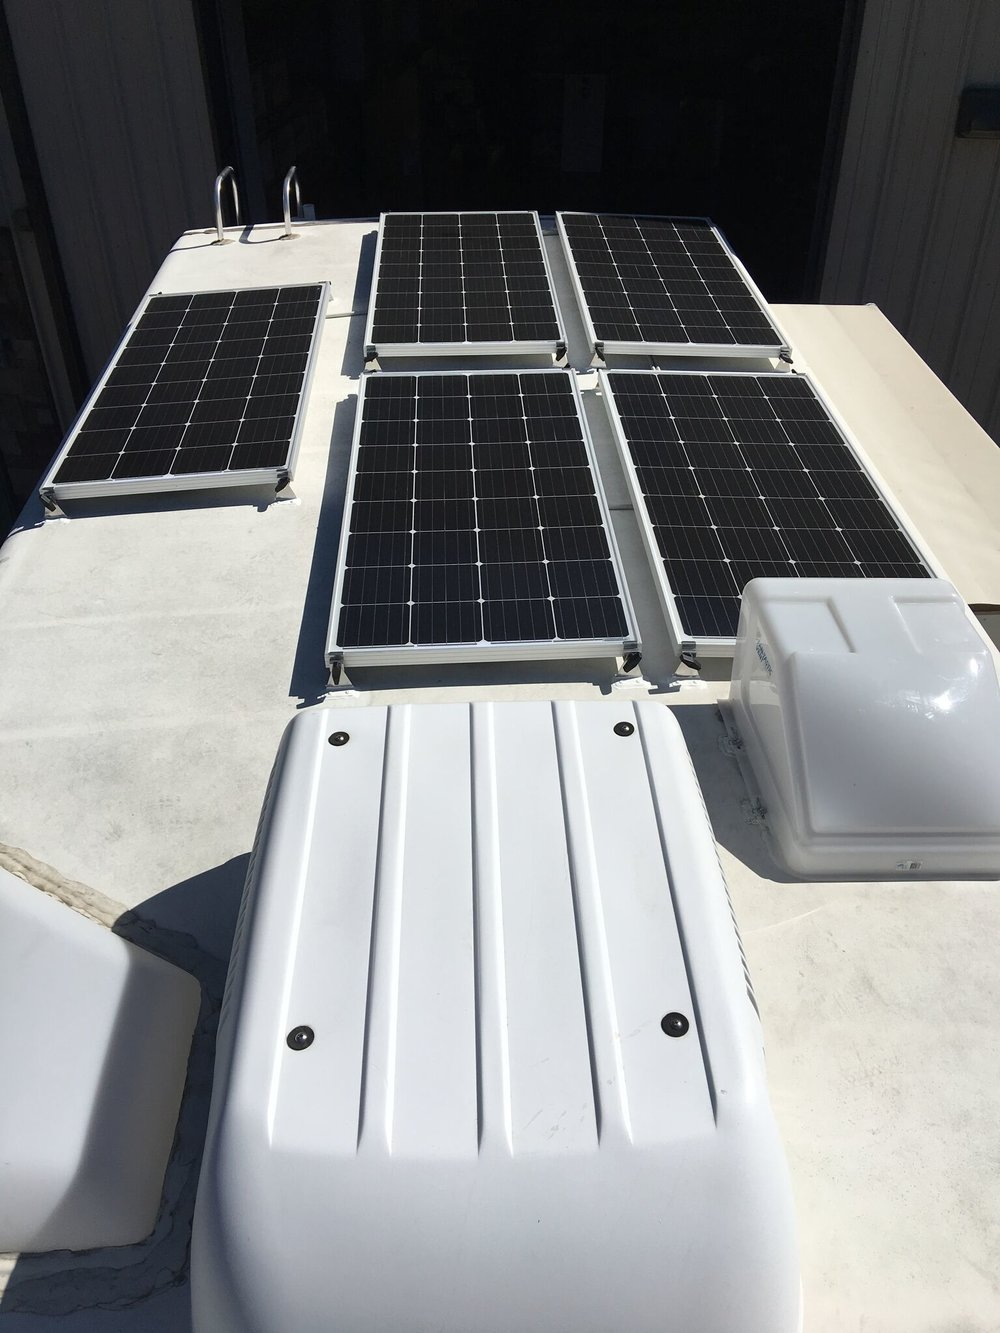 Solar Panel Installation For Rvs Trailers Am Tips When Adding Circuit Breaker Diy Your Home Equipment Added 5x Sf180 Kits 1x Roof Combiner Box Victron Bluesolar Smart